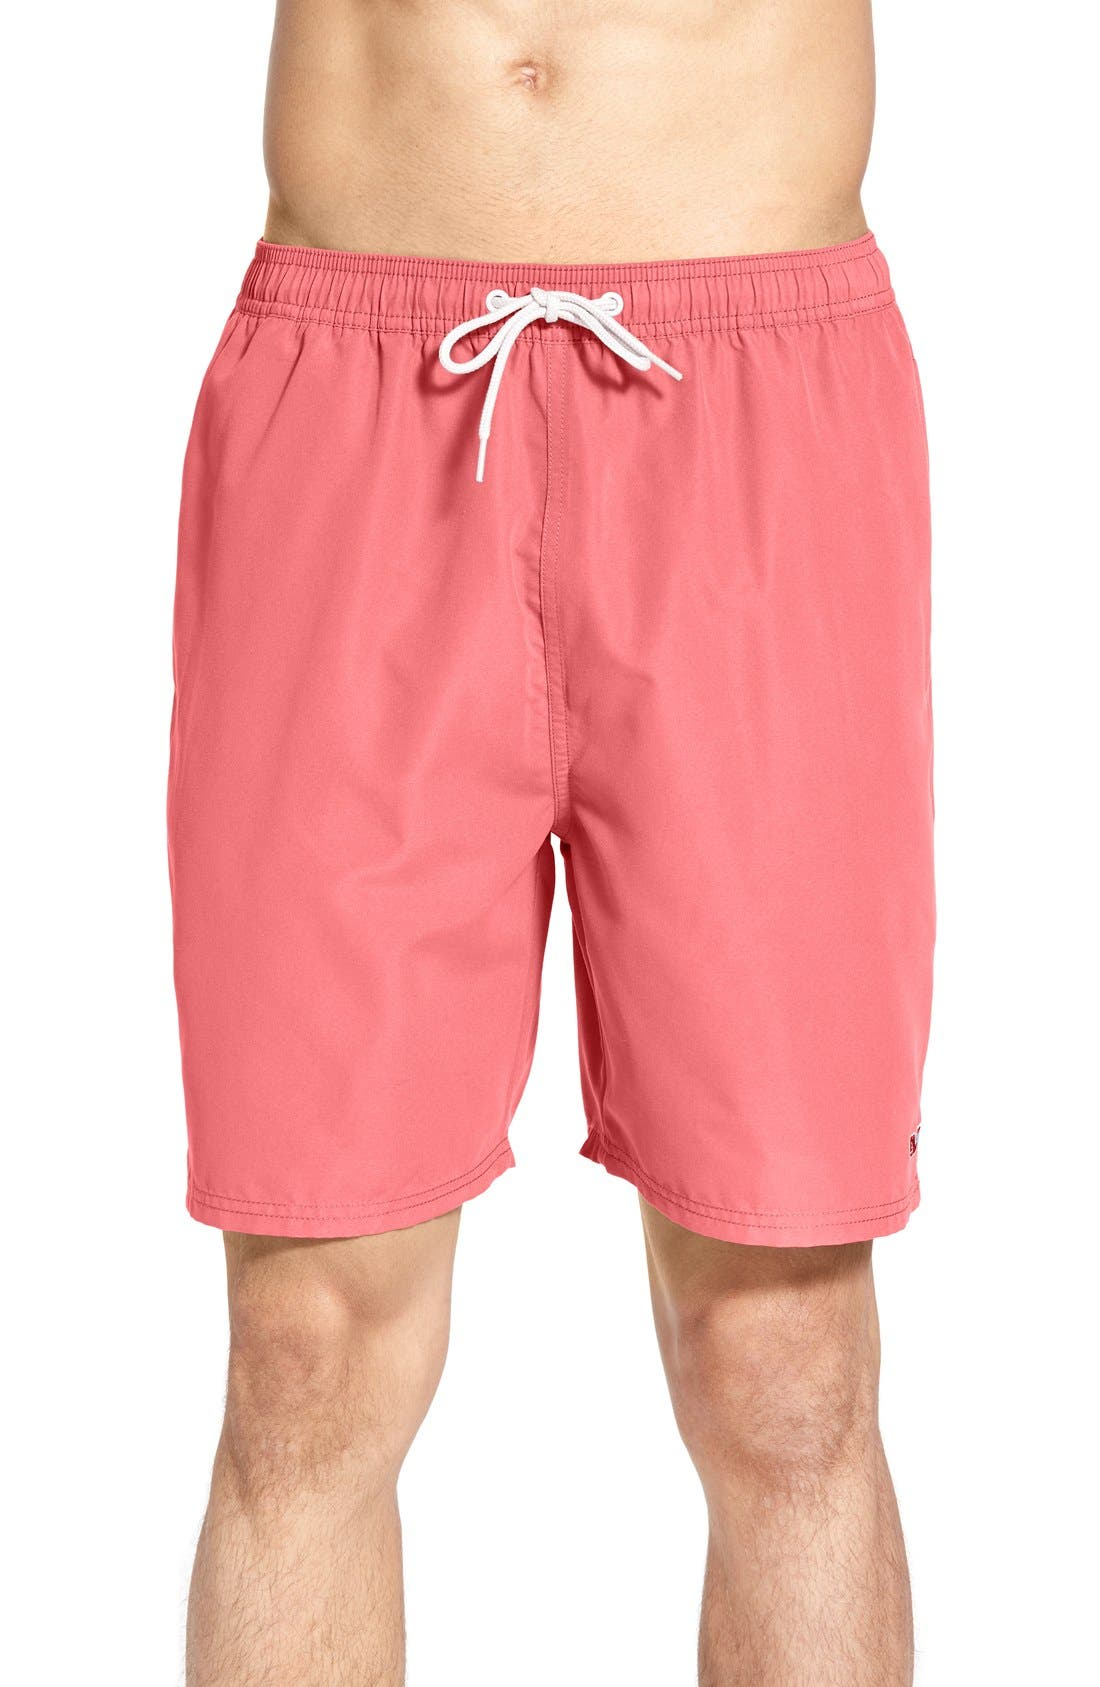 Vineyard Vines 'Solid Bungalow' Swim Trunks